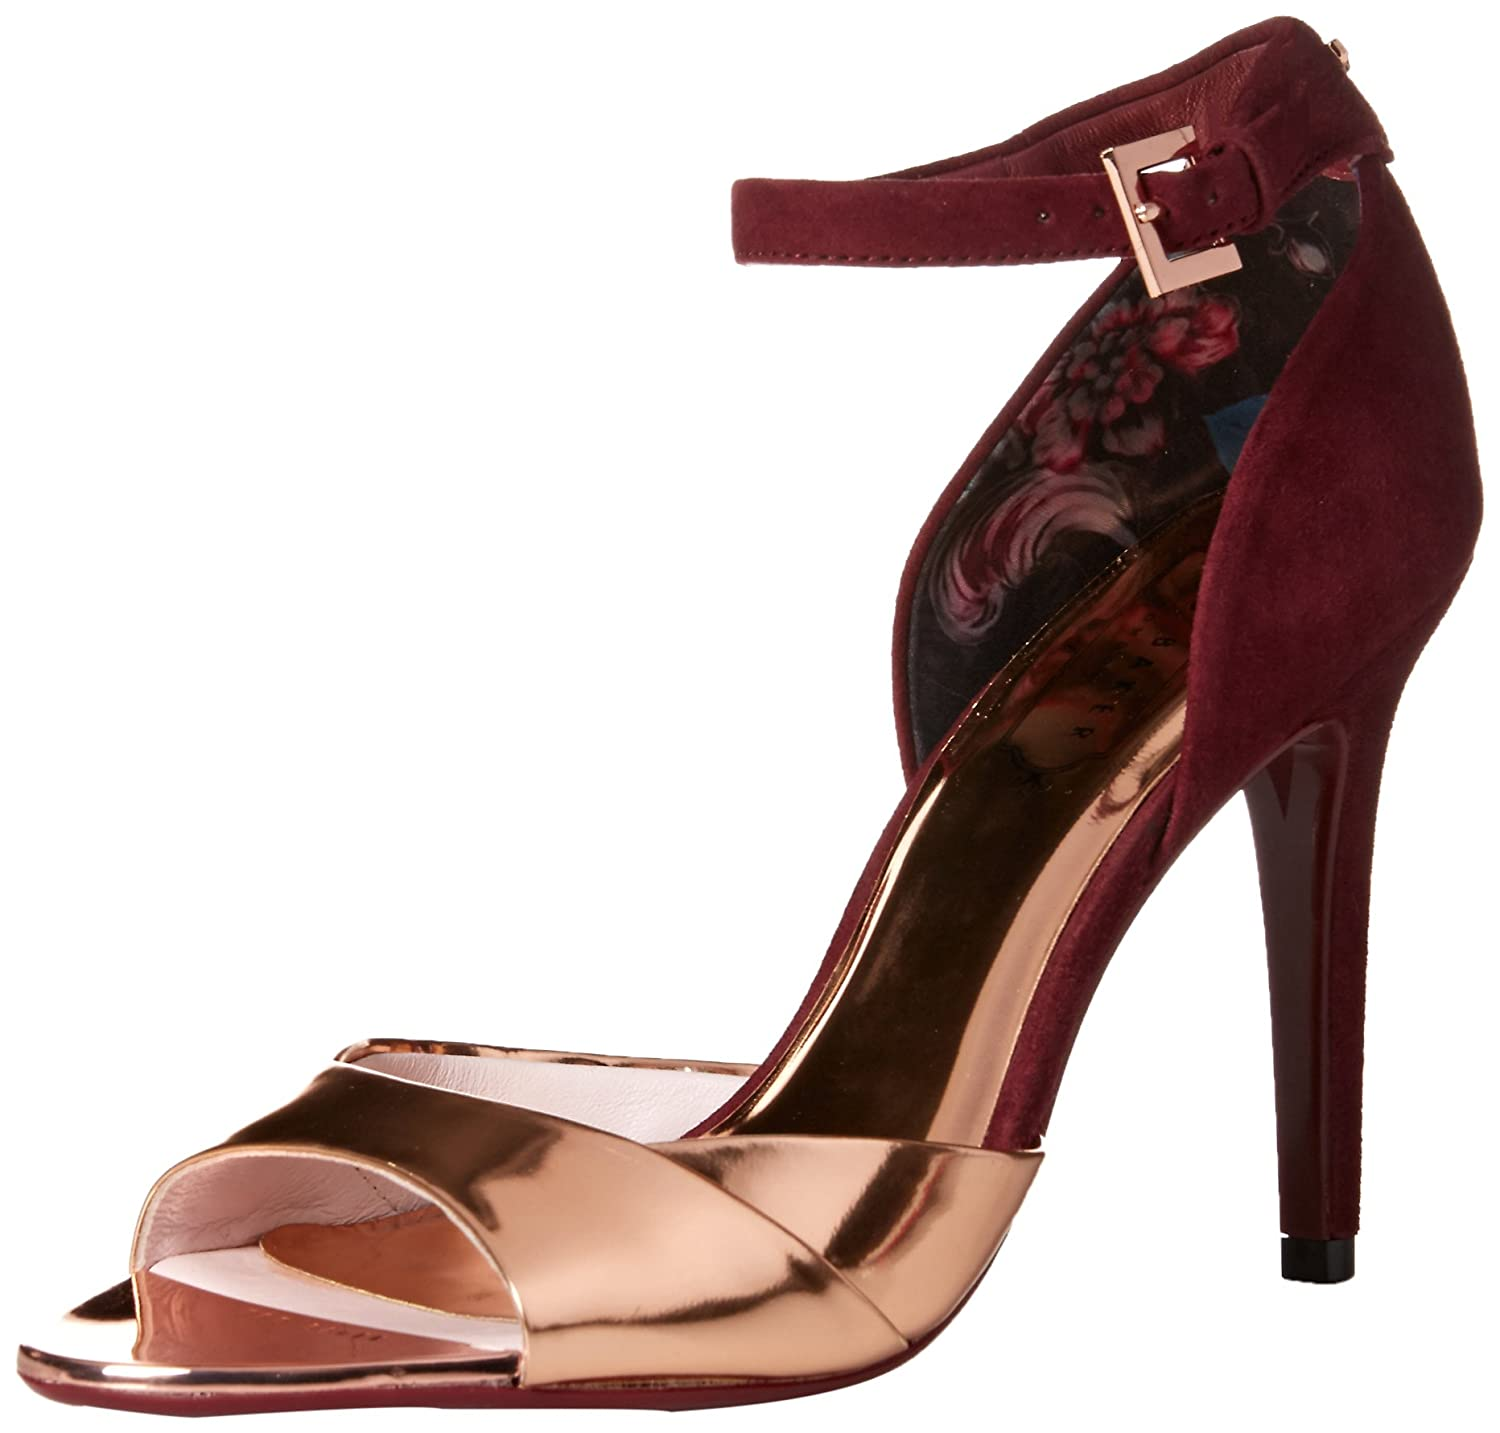 580a2f26544 Amazon.com: Ted Baker Women's CAMIYL Dress Sandal: Shoes